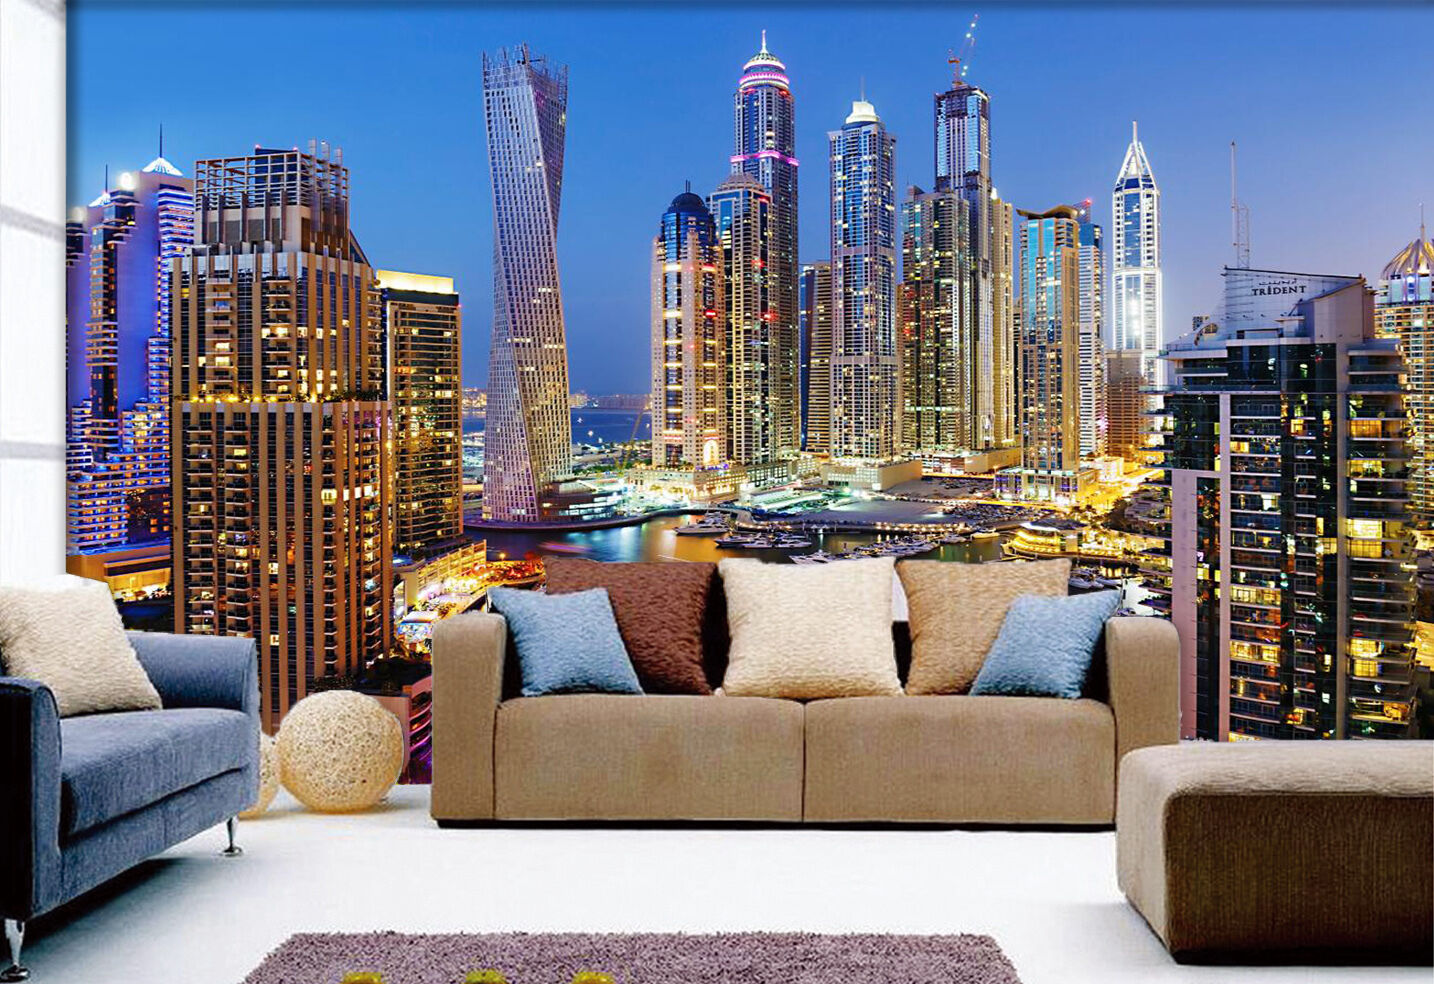 3D City Night View 56 Wall Paper Wall Print Decal Wall Deco Indoor Wall Murals